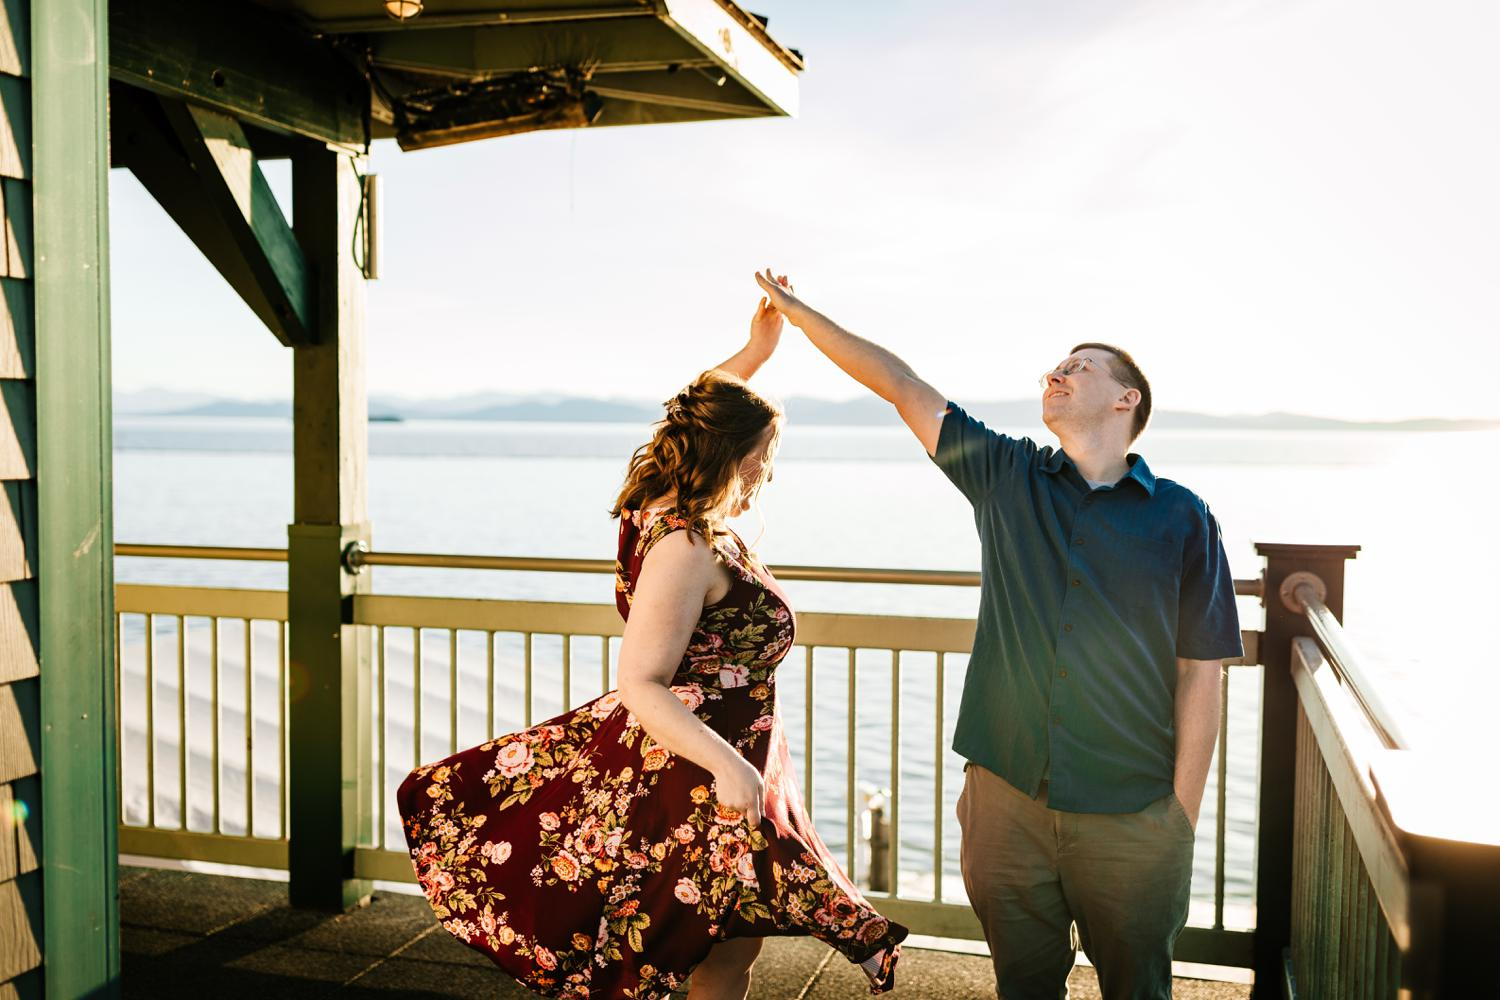 Couple dancing on boardwalk in front of mountains and lake